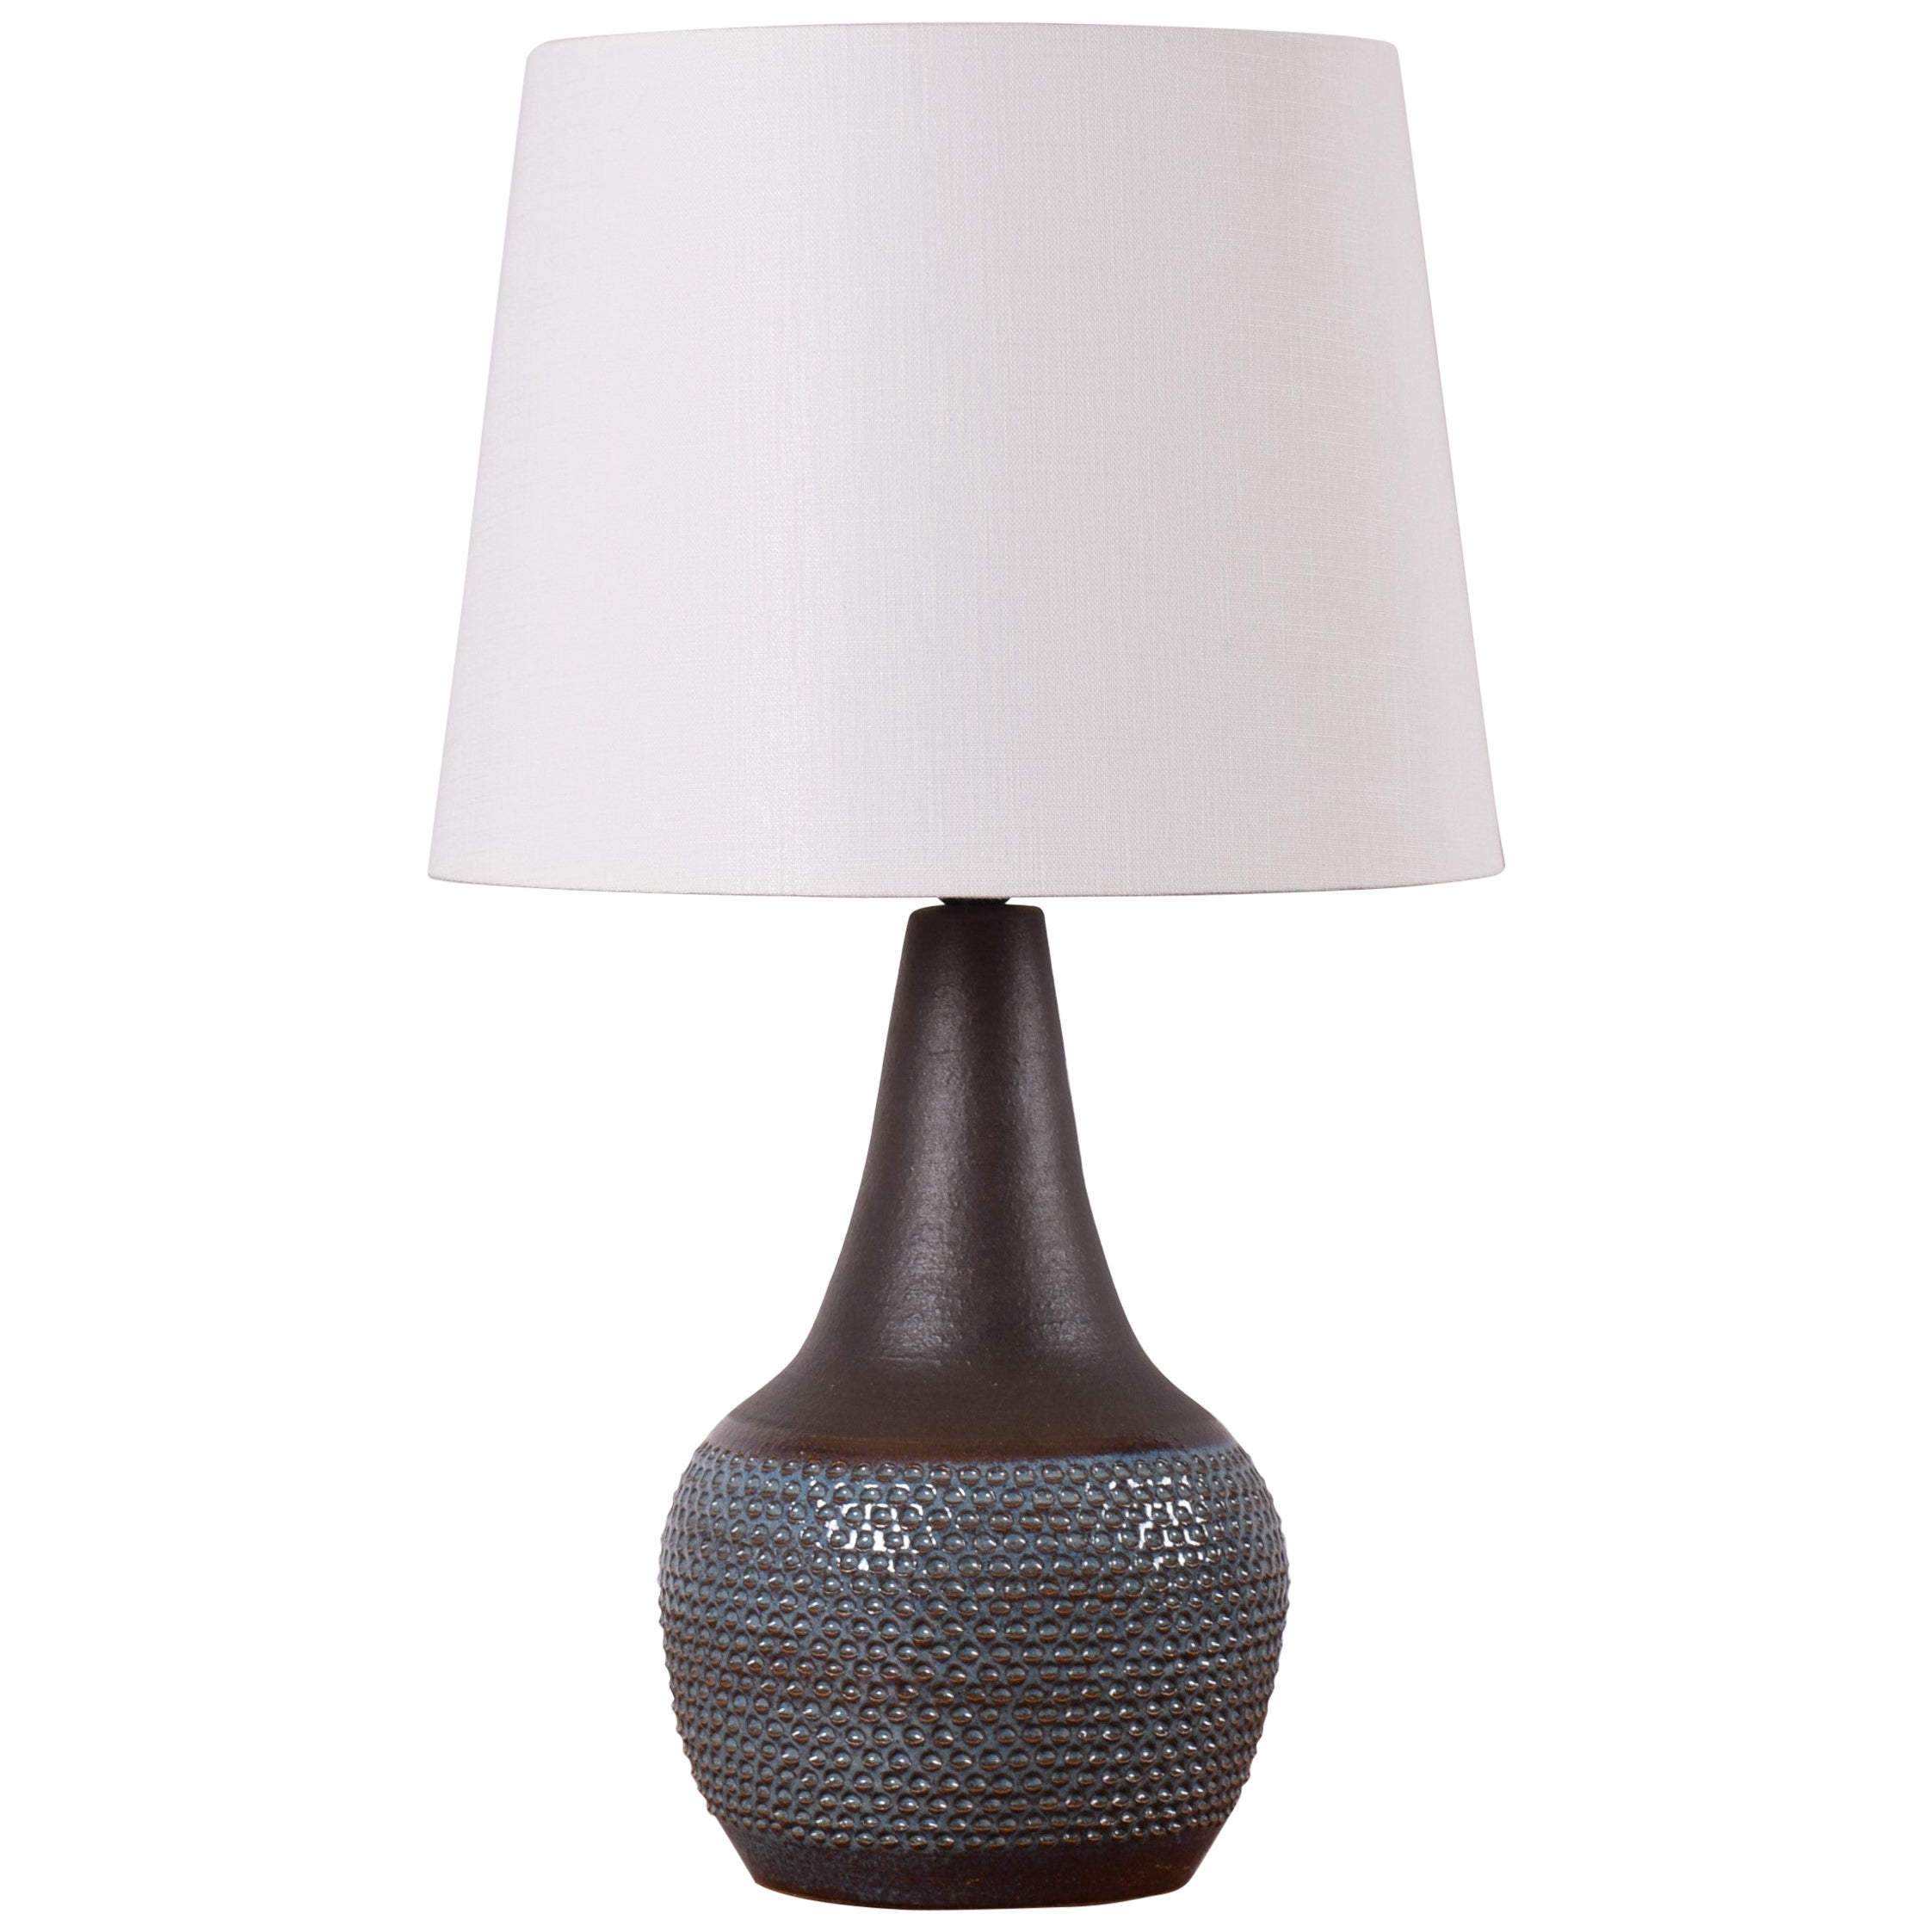 Danish Modern Søholm Blue Ceramic Table Lamp with Lampshade by Einar Johansen